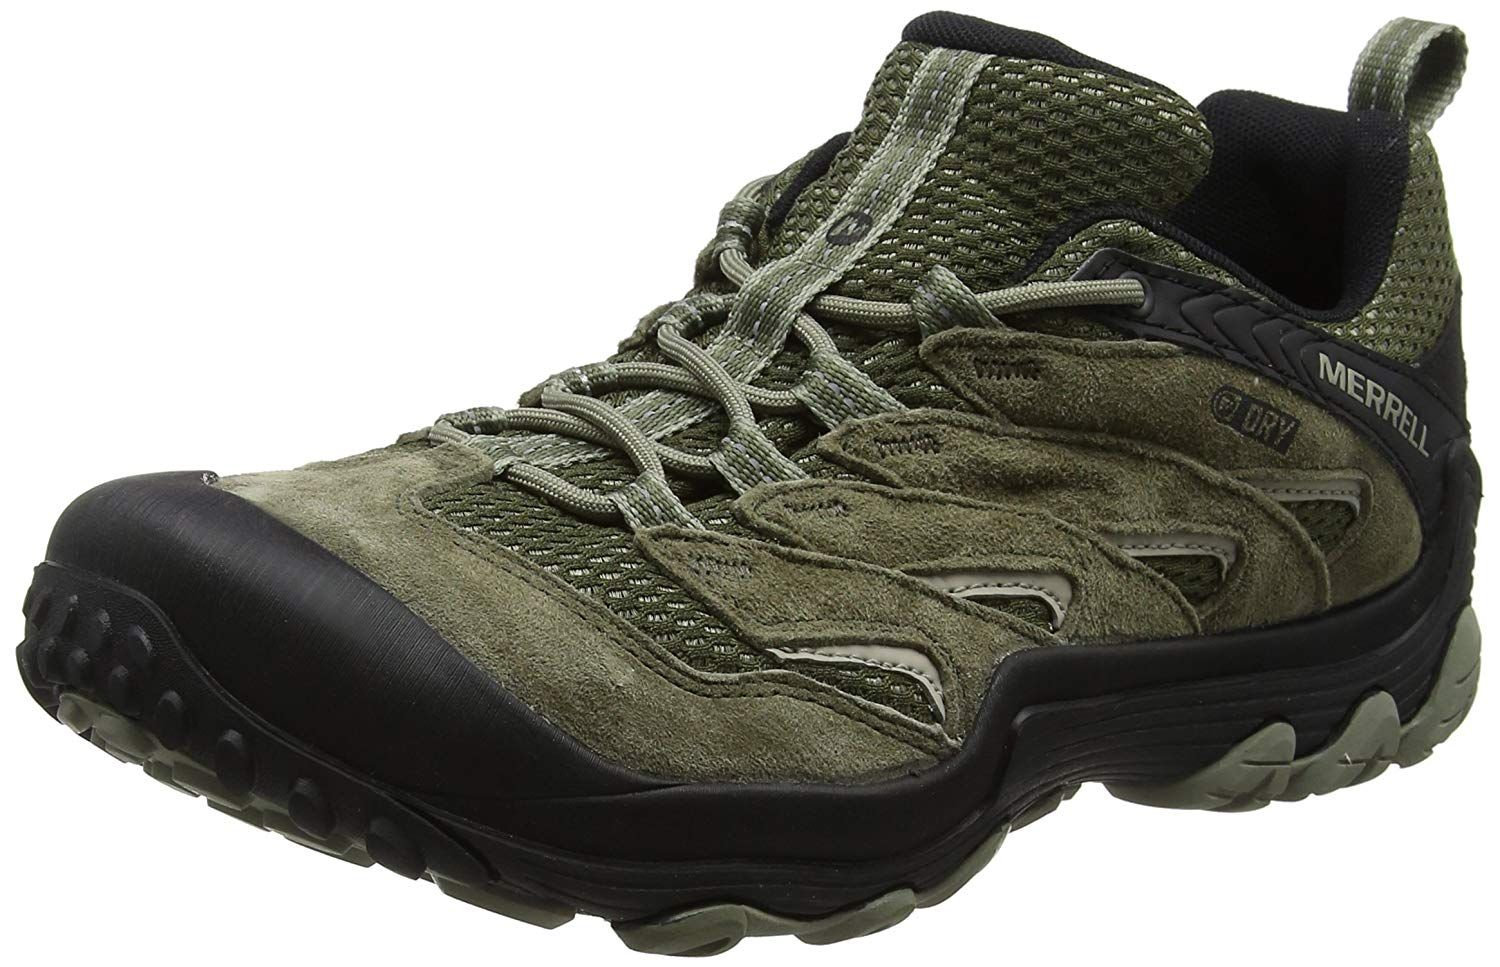 e62aaa700 Merrell Chameleon 7 Limit WTPF Walking Shoes 9 D(M) US Dusty Olive ...